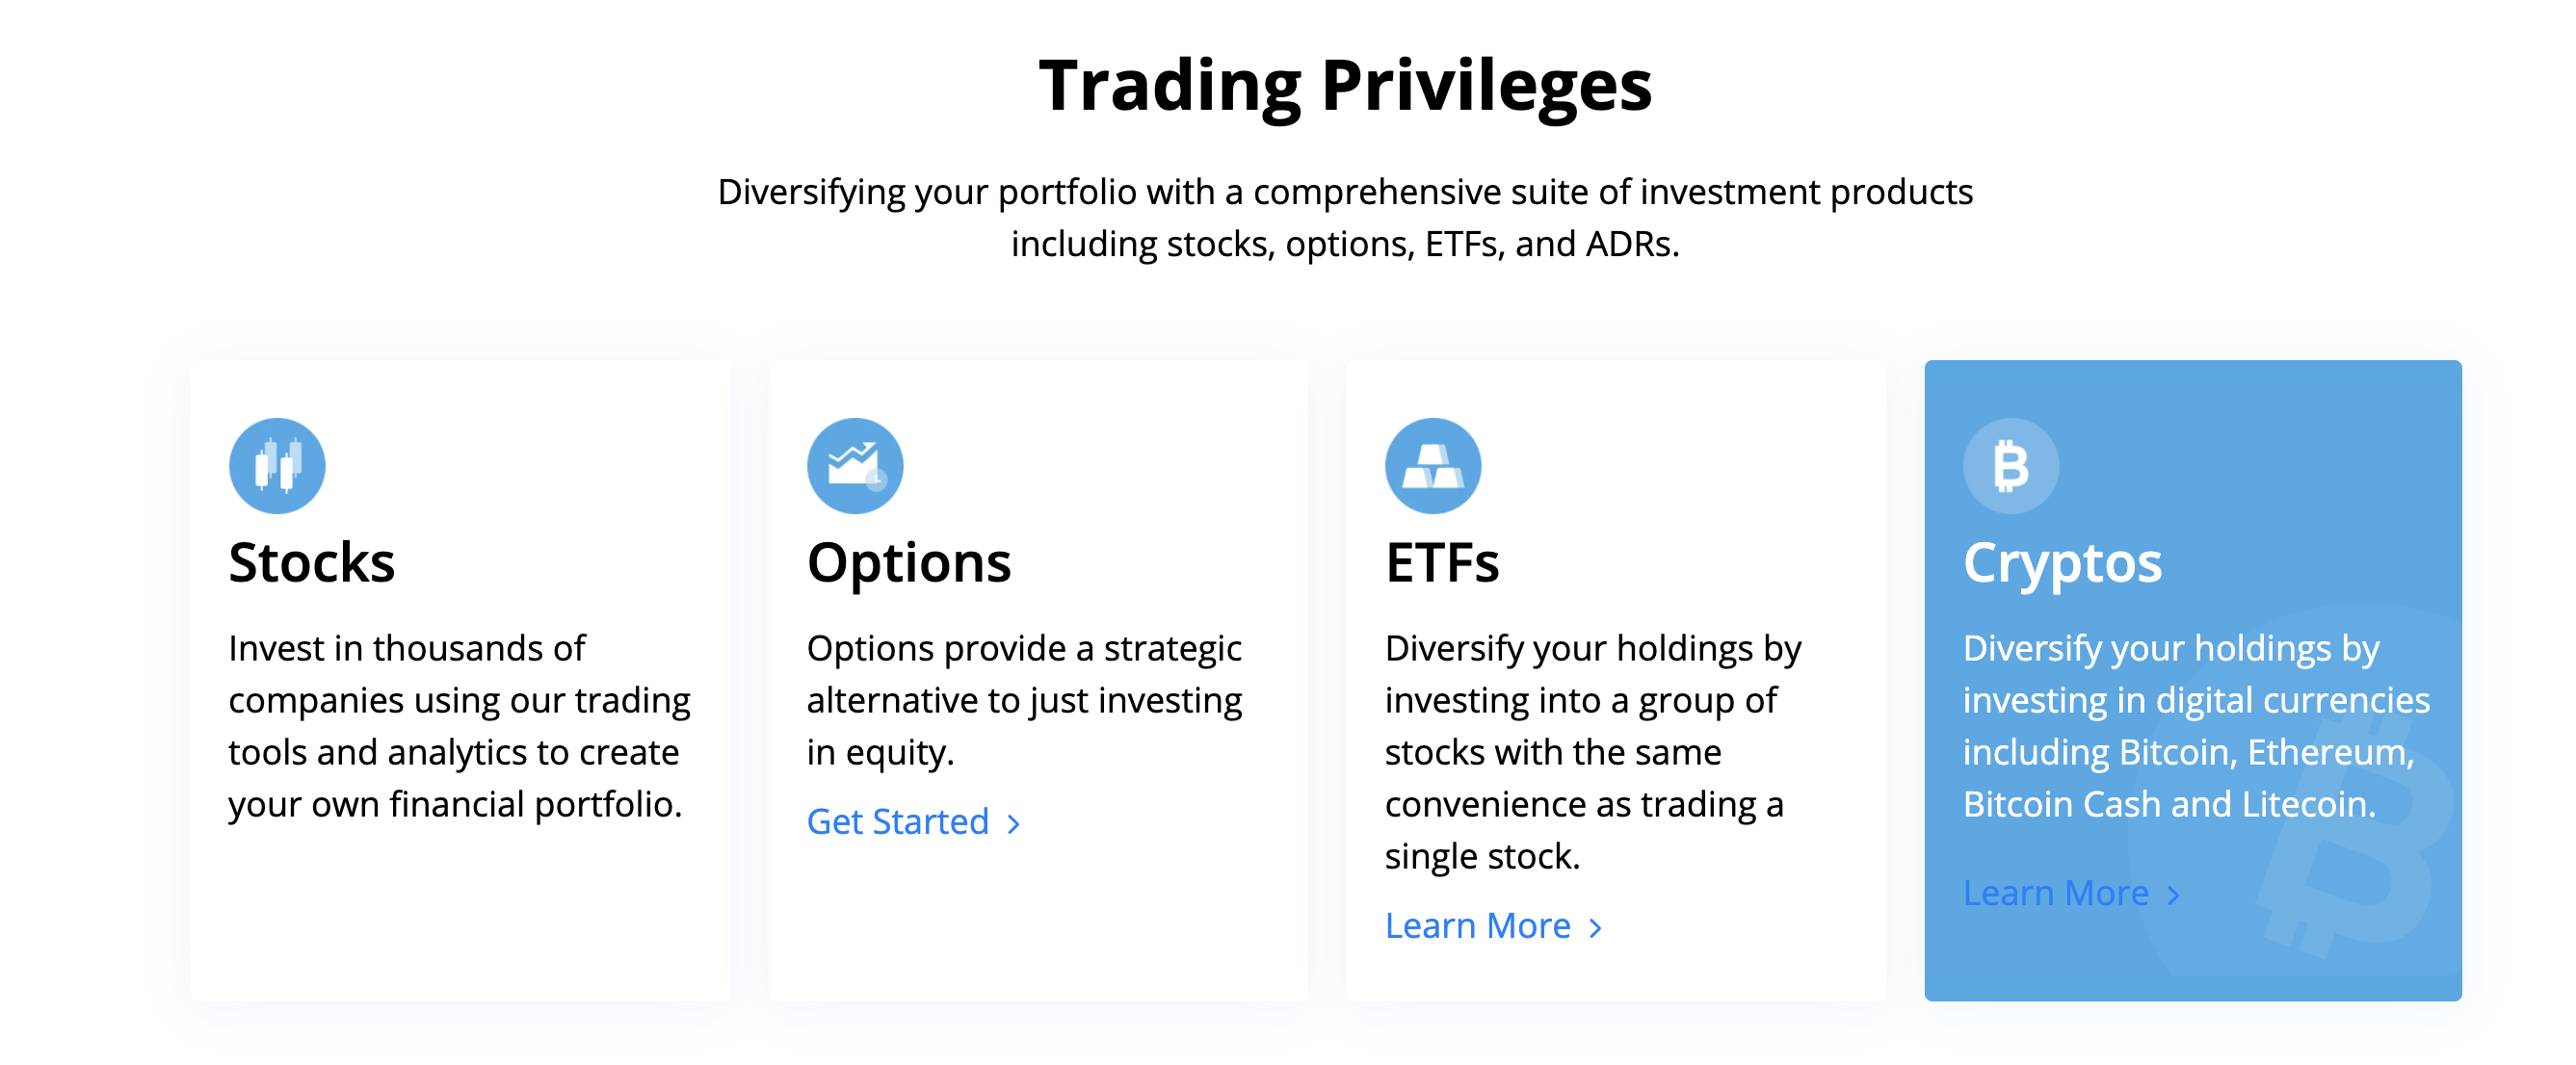 Webull offers four types of assets to trade: stocks, options, ETFs, and positions of crypto. Image from webull.com